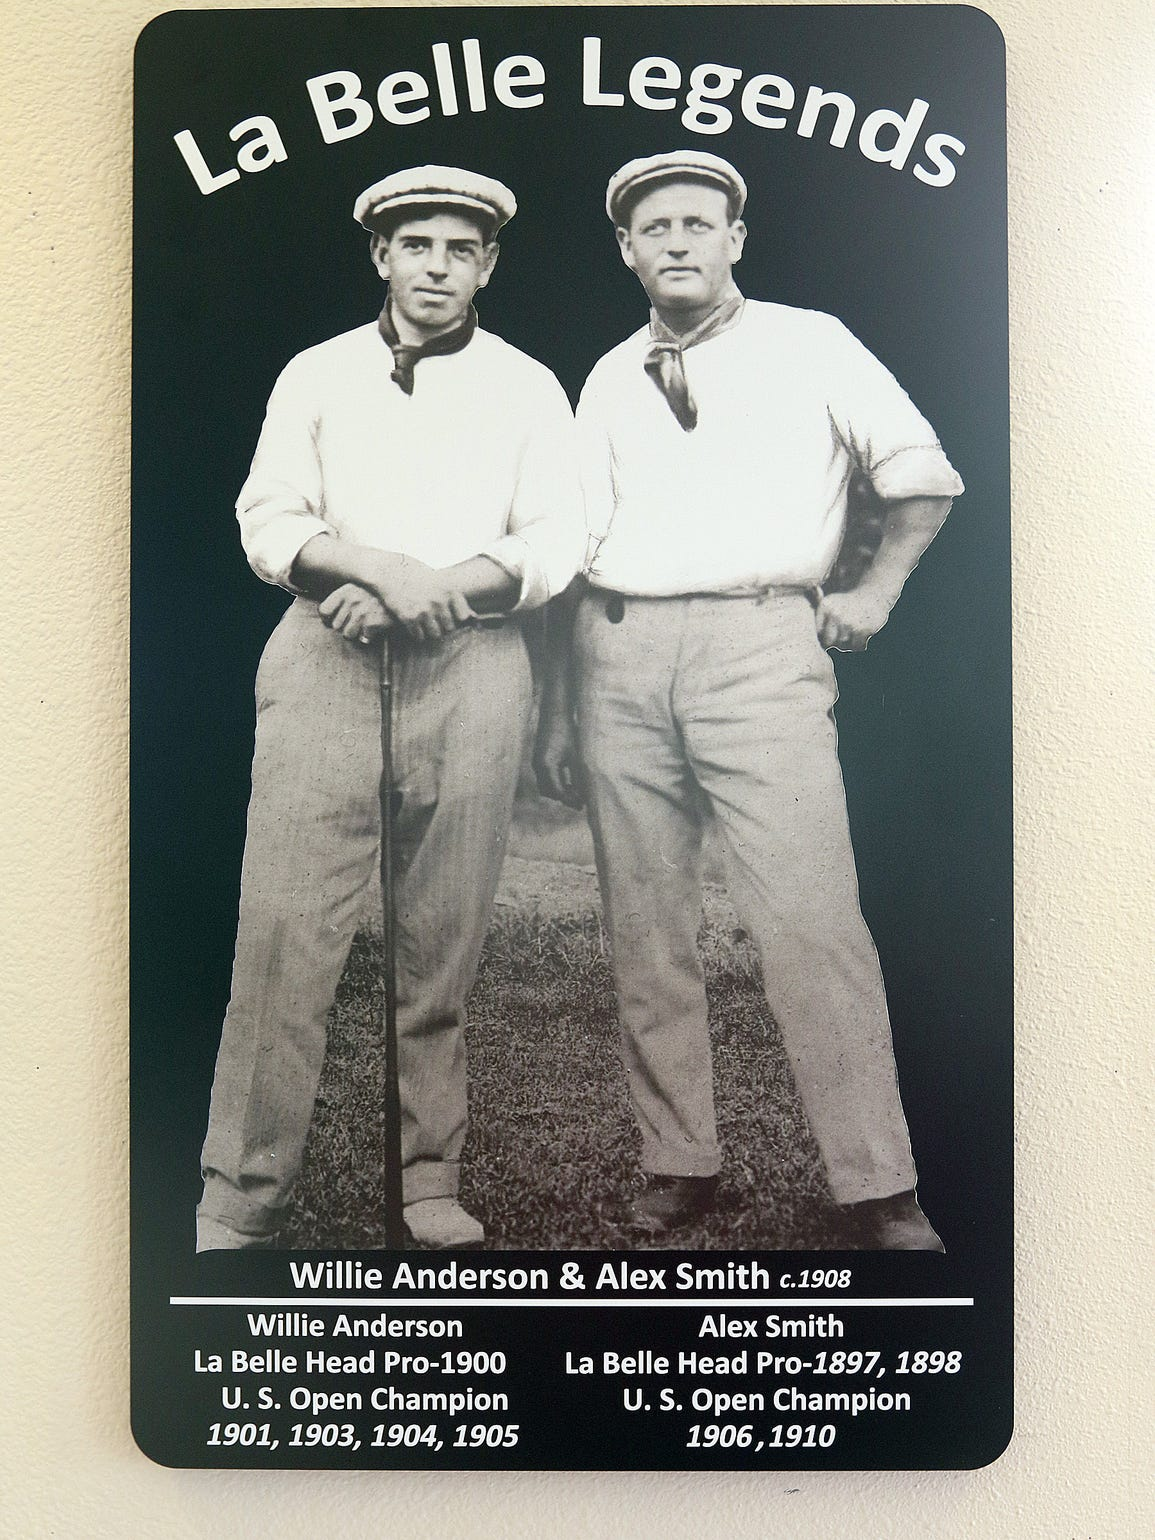 Willie Anderson (left) and Alex Smith are commemorated